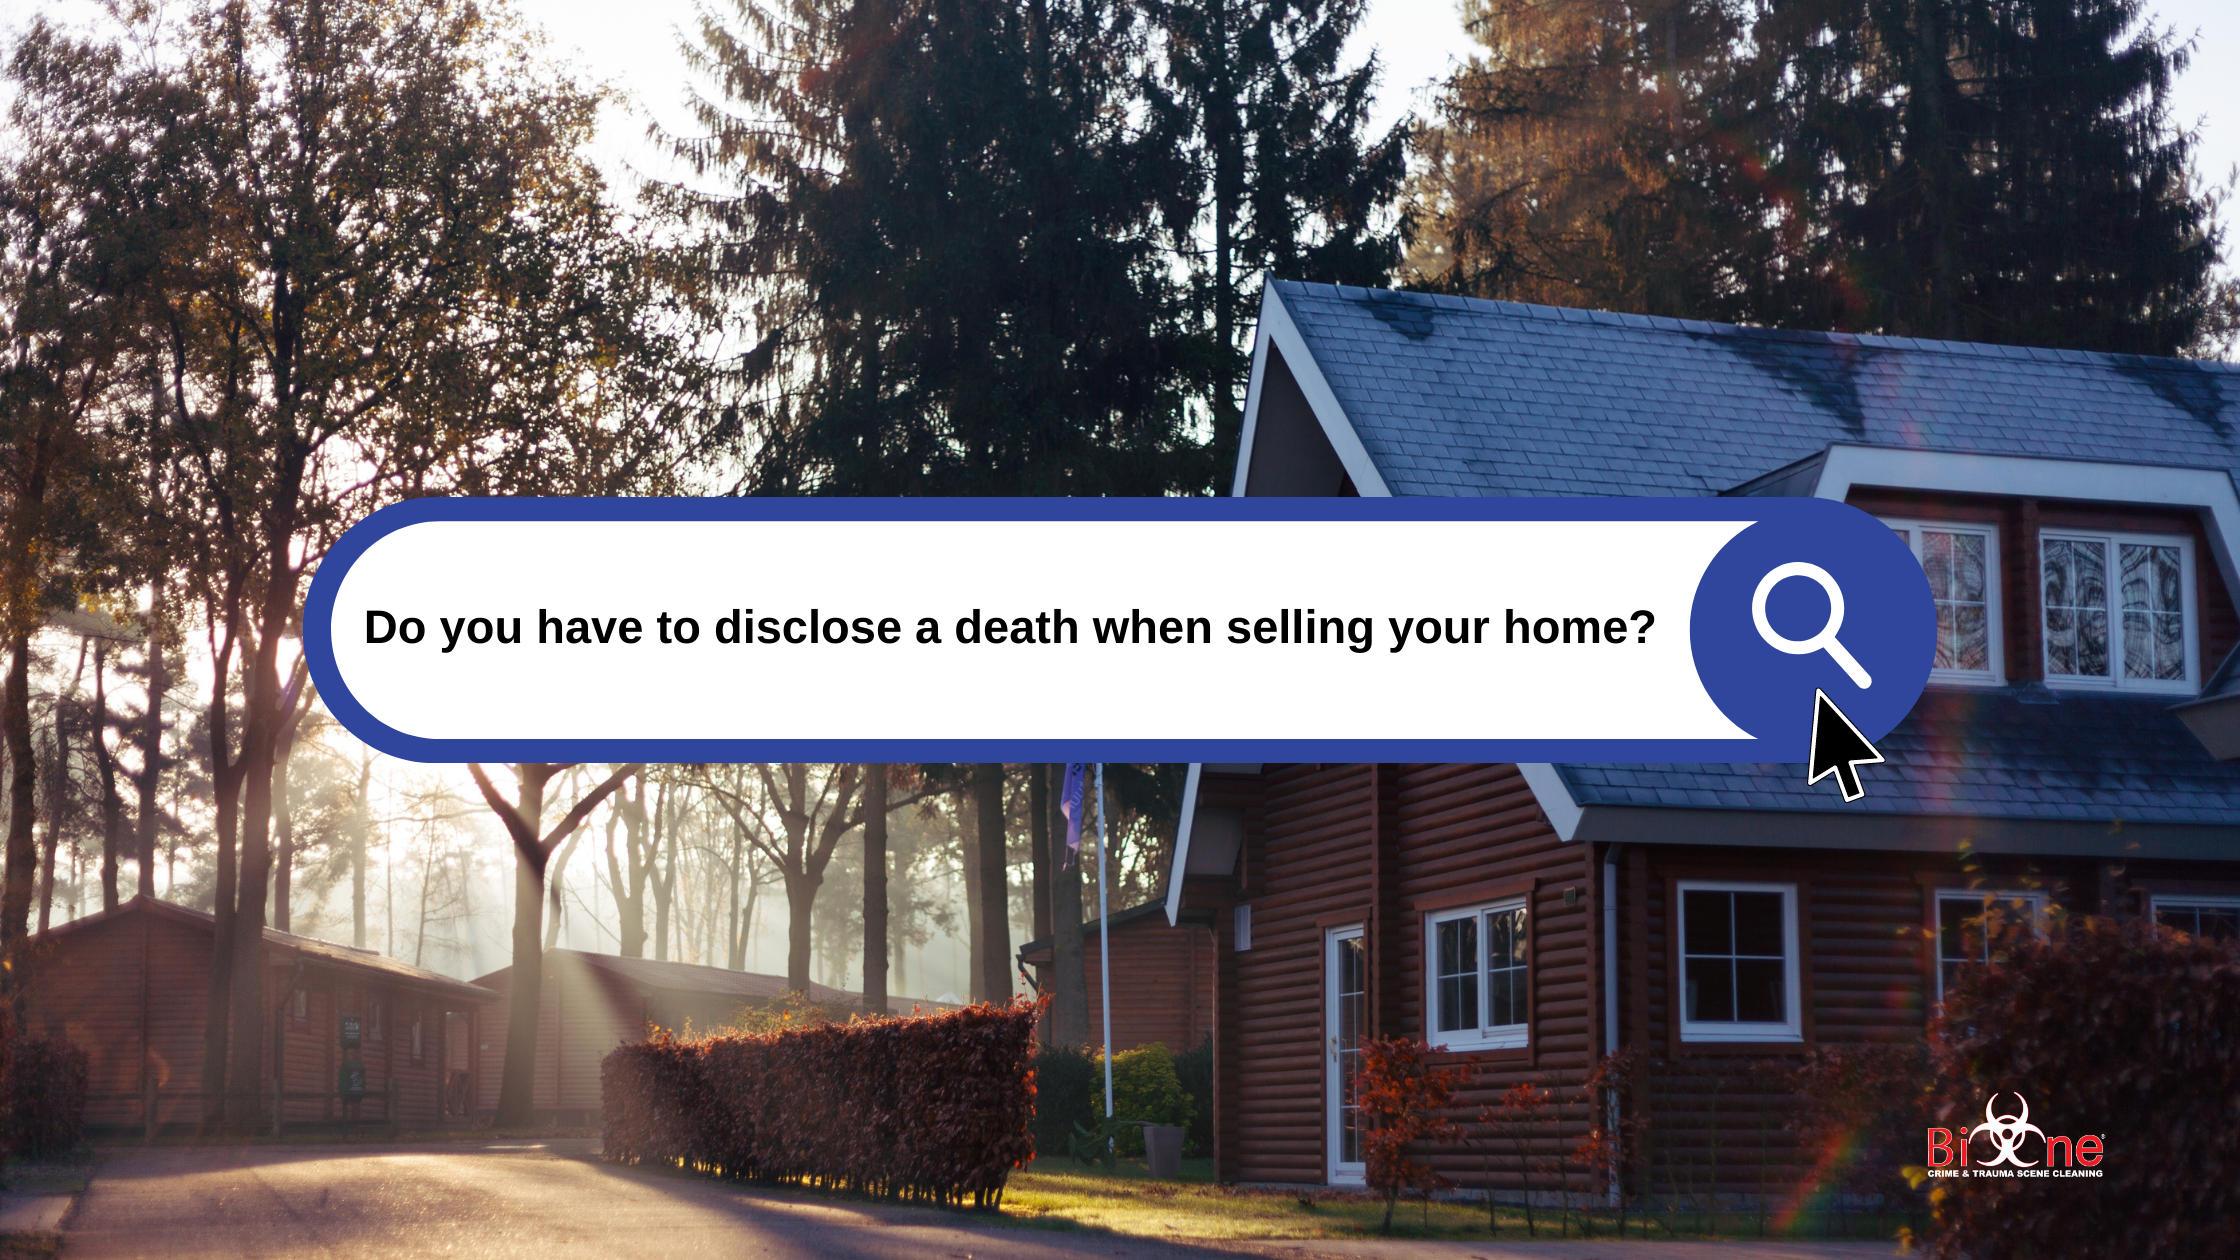 In North Carolina - Do you Have to Disclose a Death When Selling Your Home?